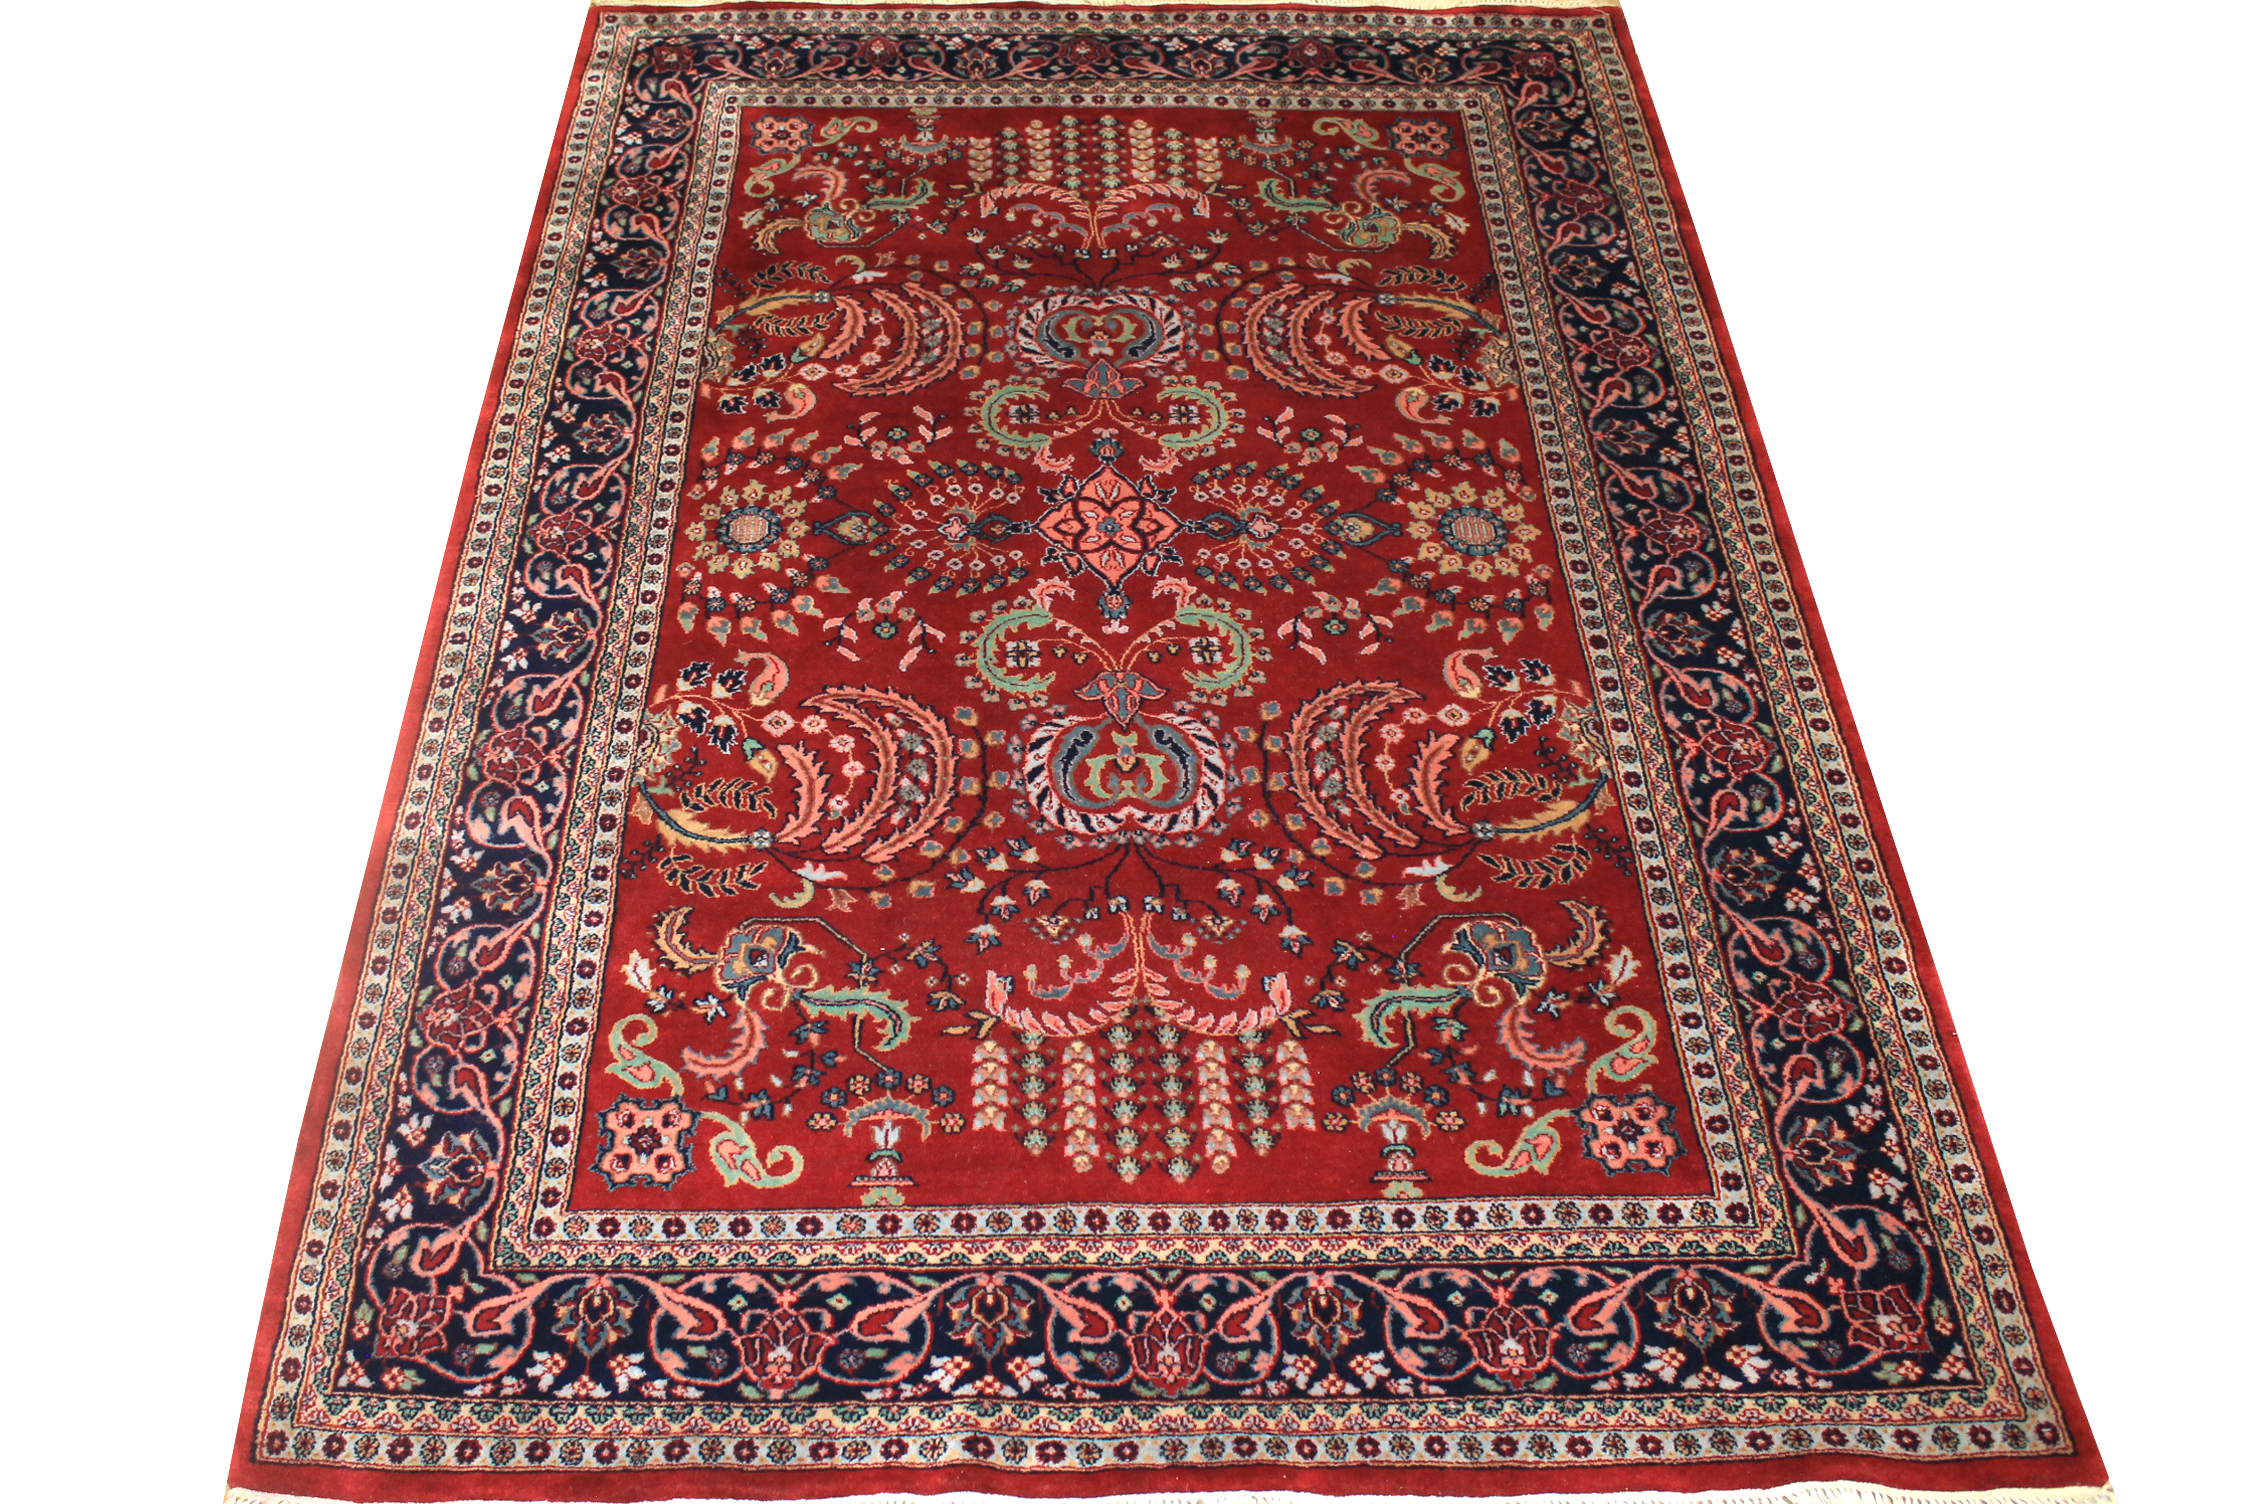 5x7/8 Traditional Hand Knotted Wool Area Rug - MR1474